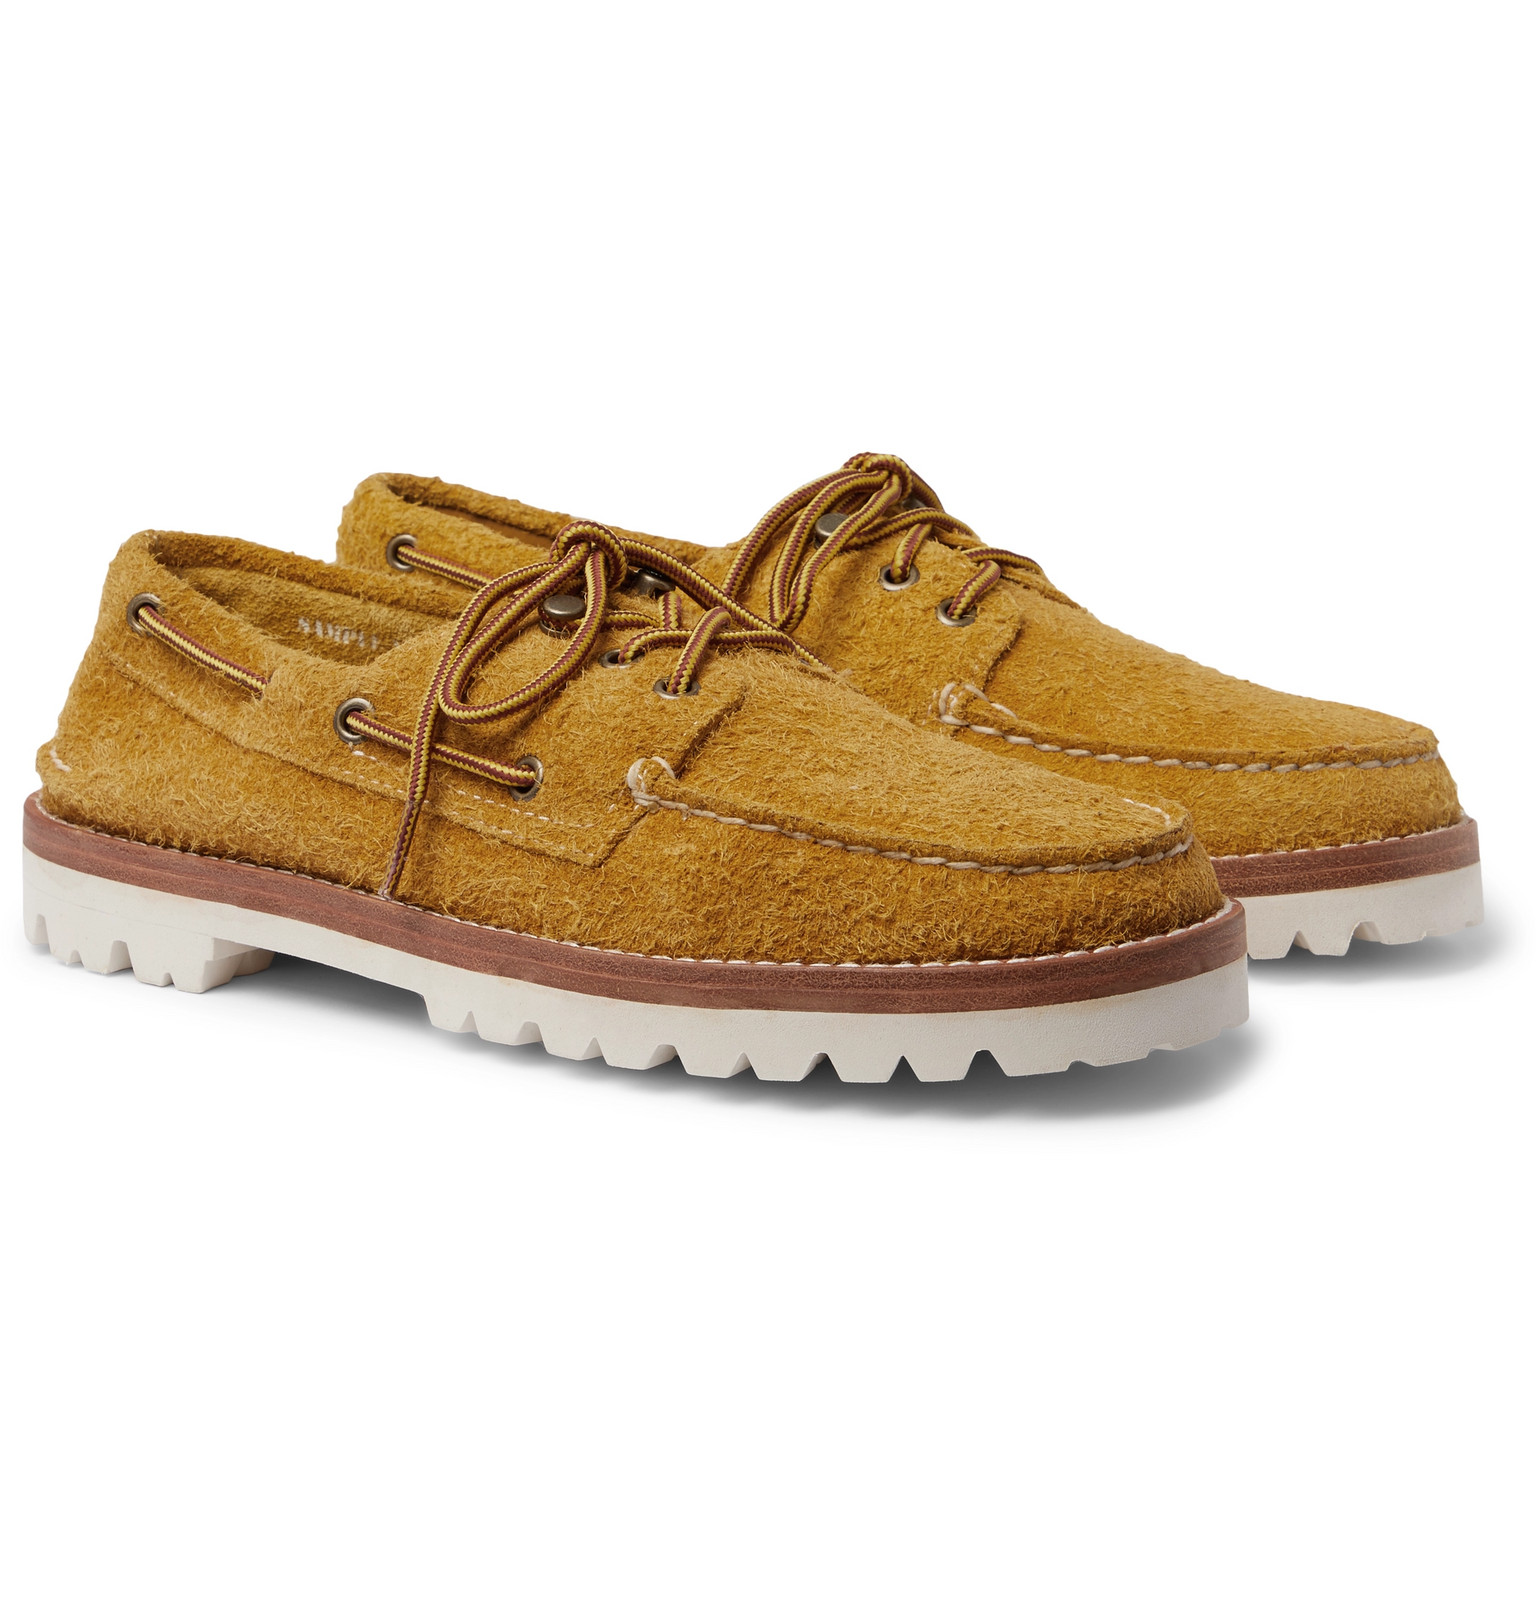 Brushed-Suede Boat Shoes by Sperry